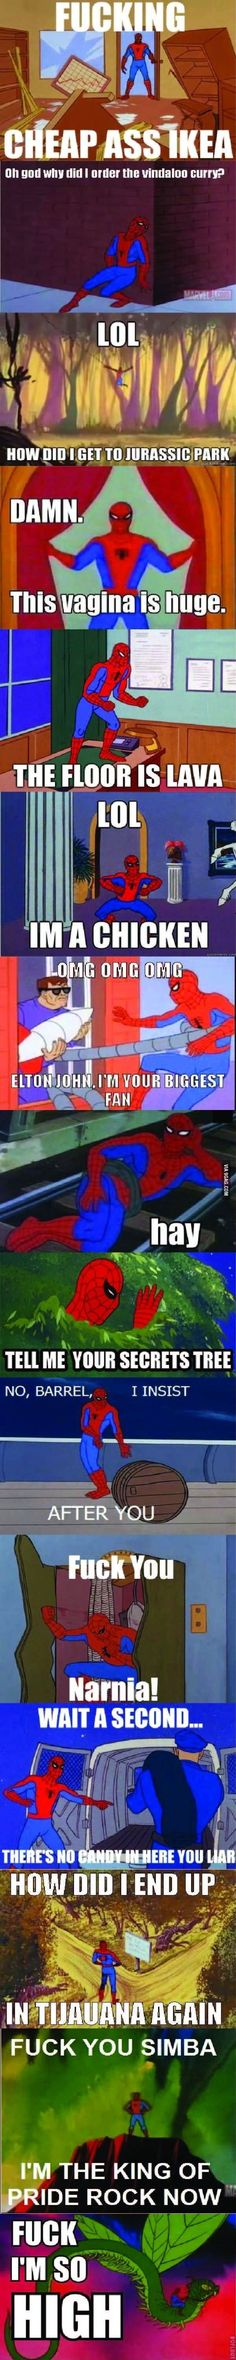 9GAG - This is why I love Spider-Man